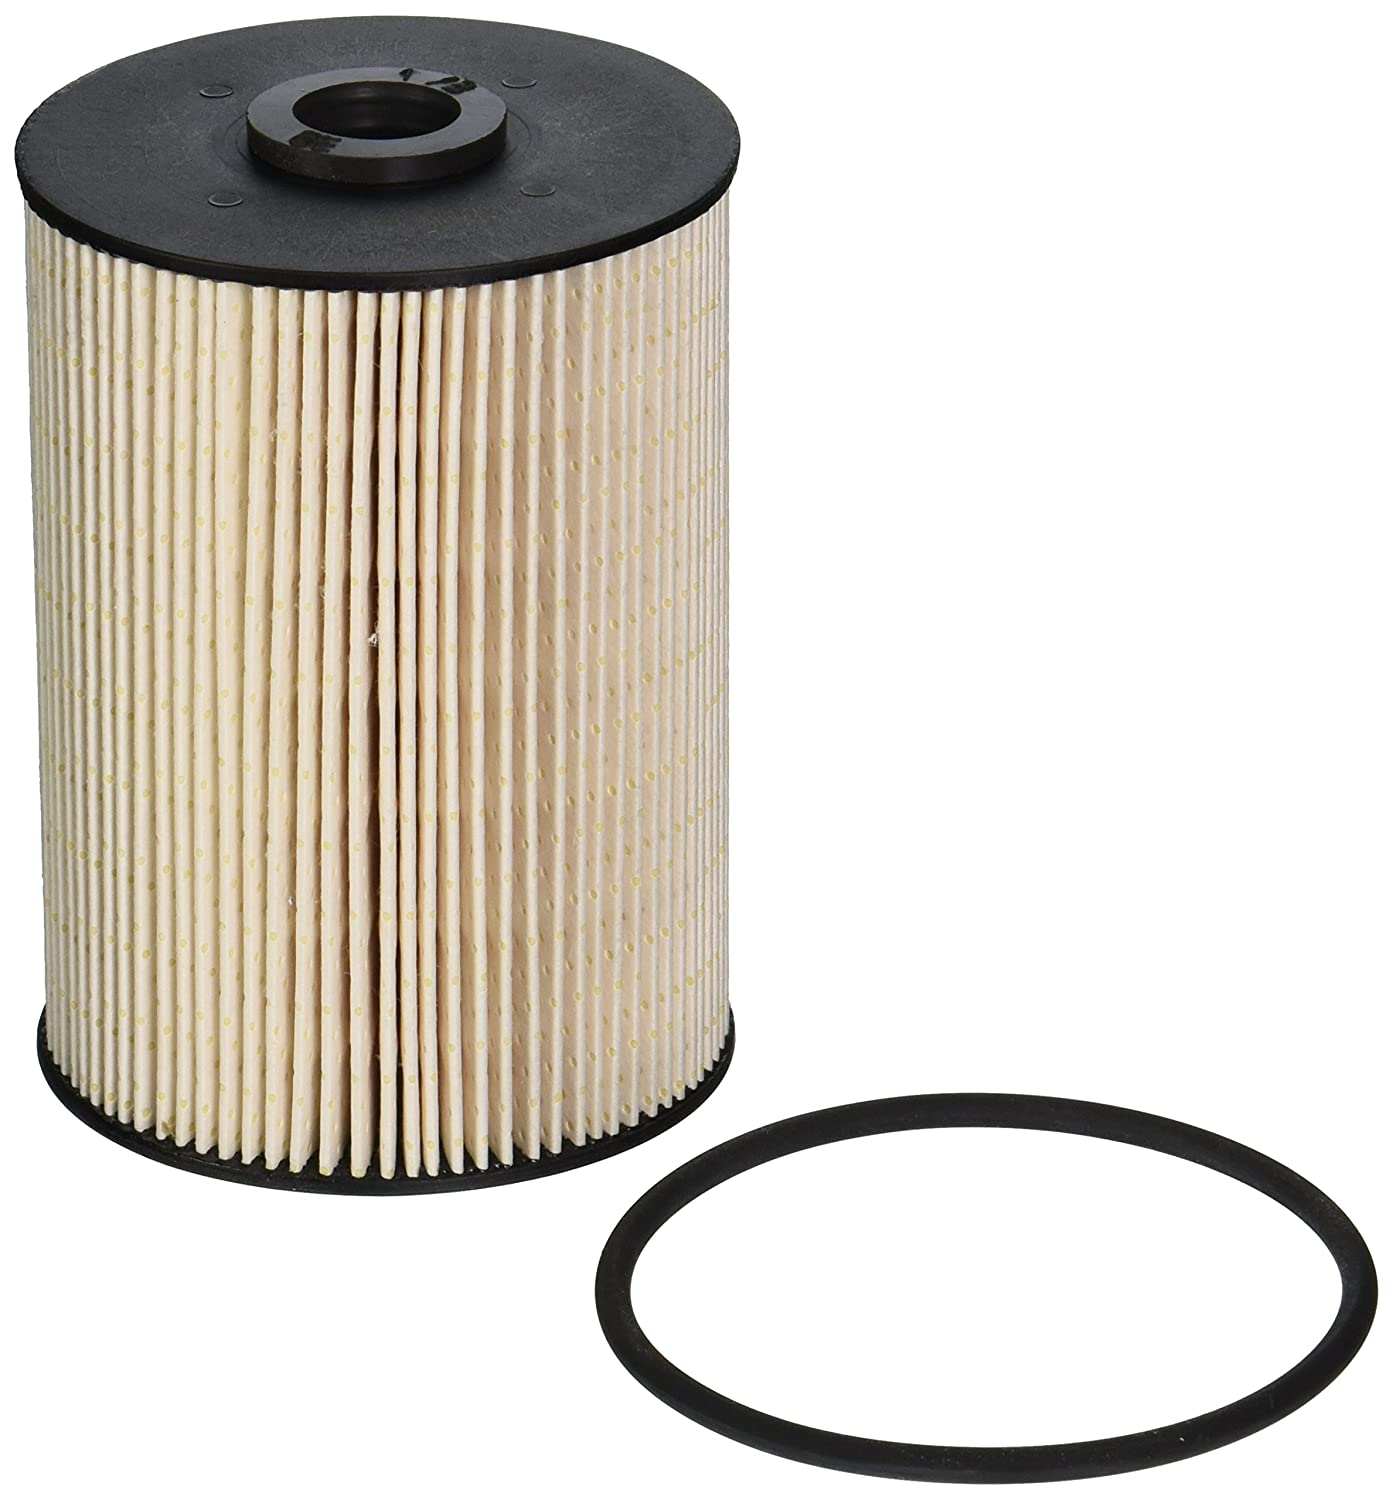 Amazon.com: Diesel Fuel Filter for VW Golf Jetta TDI HENGST Made in  Germany: Automotive